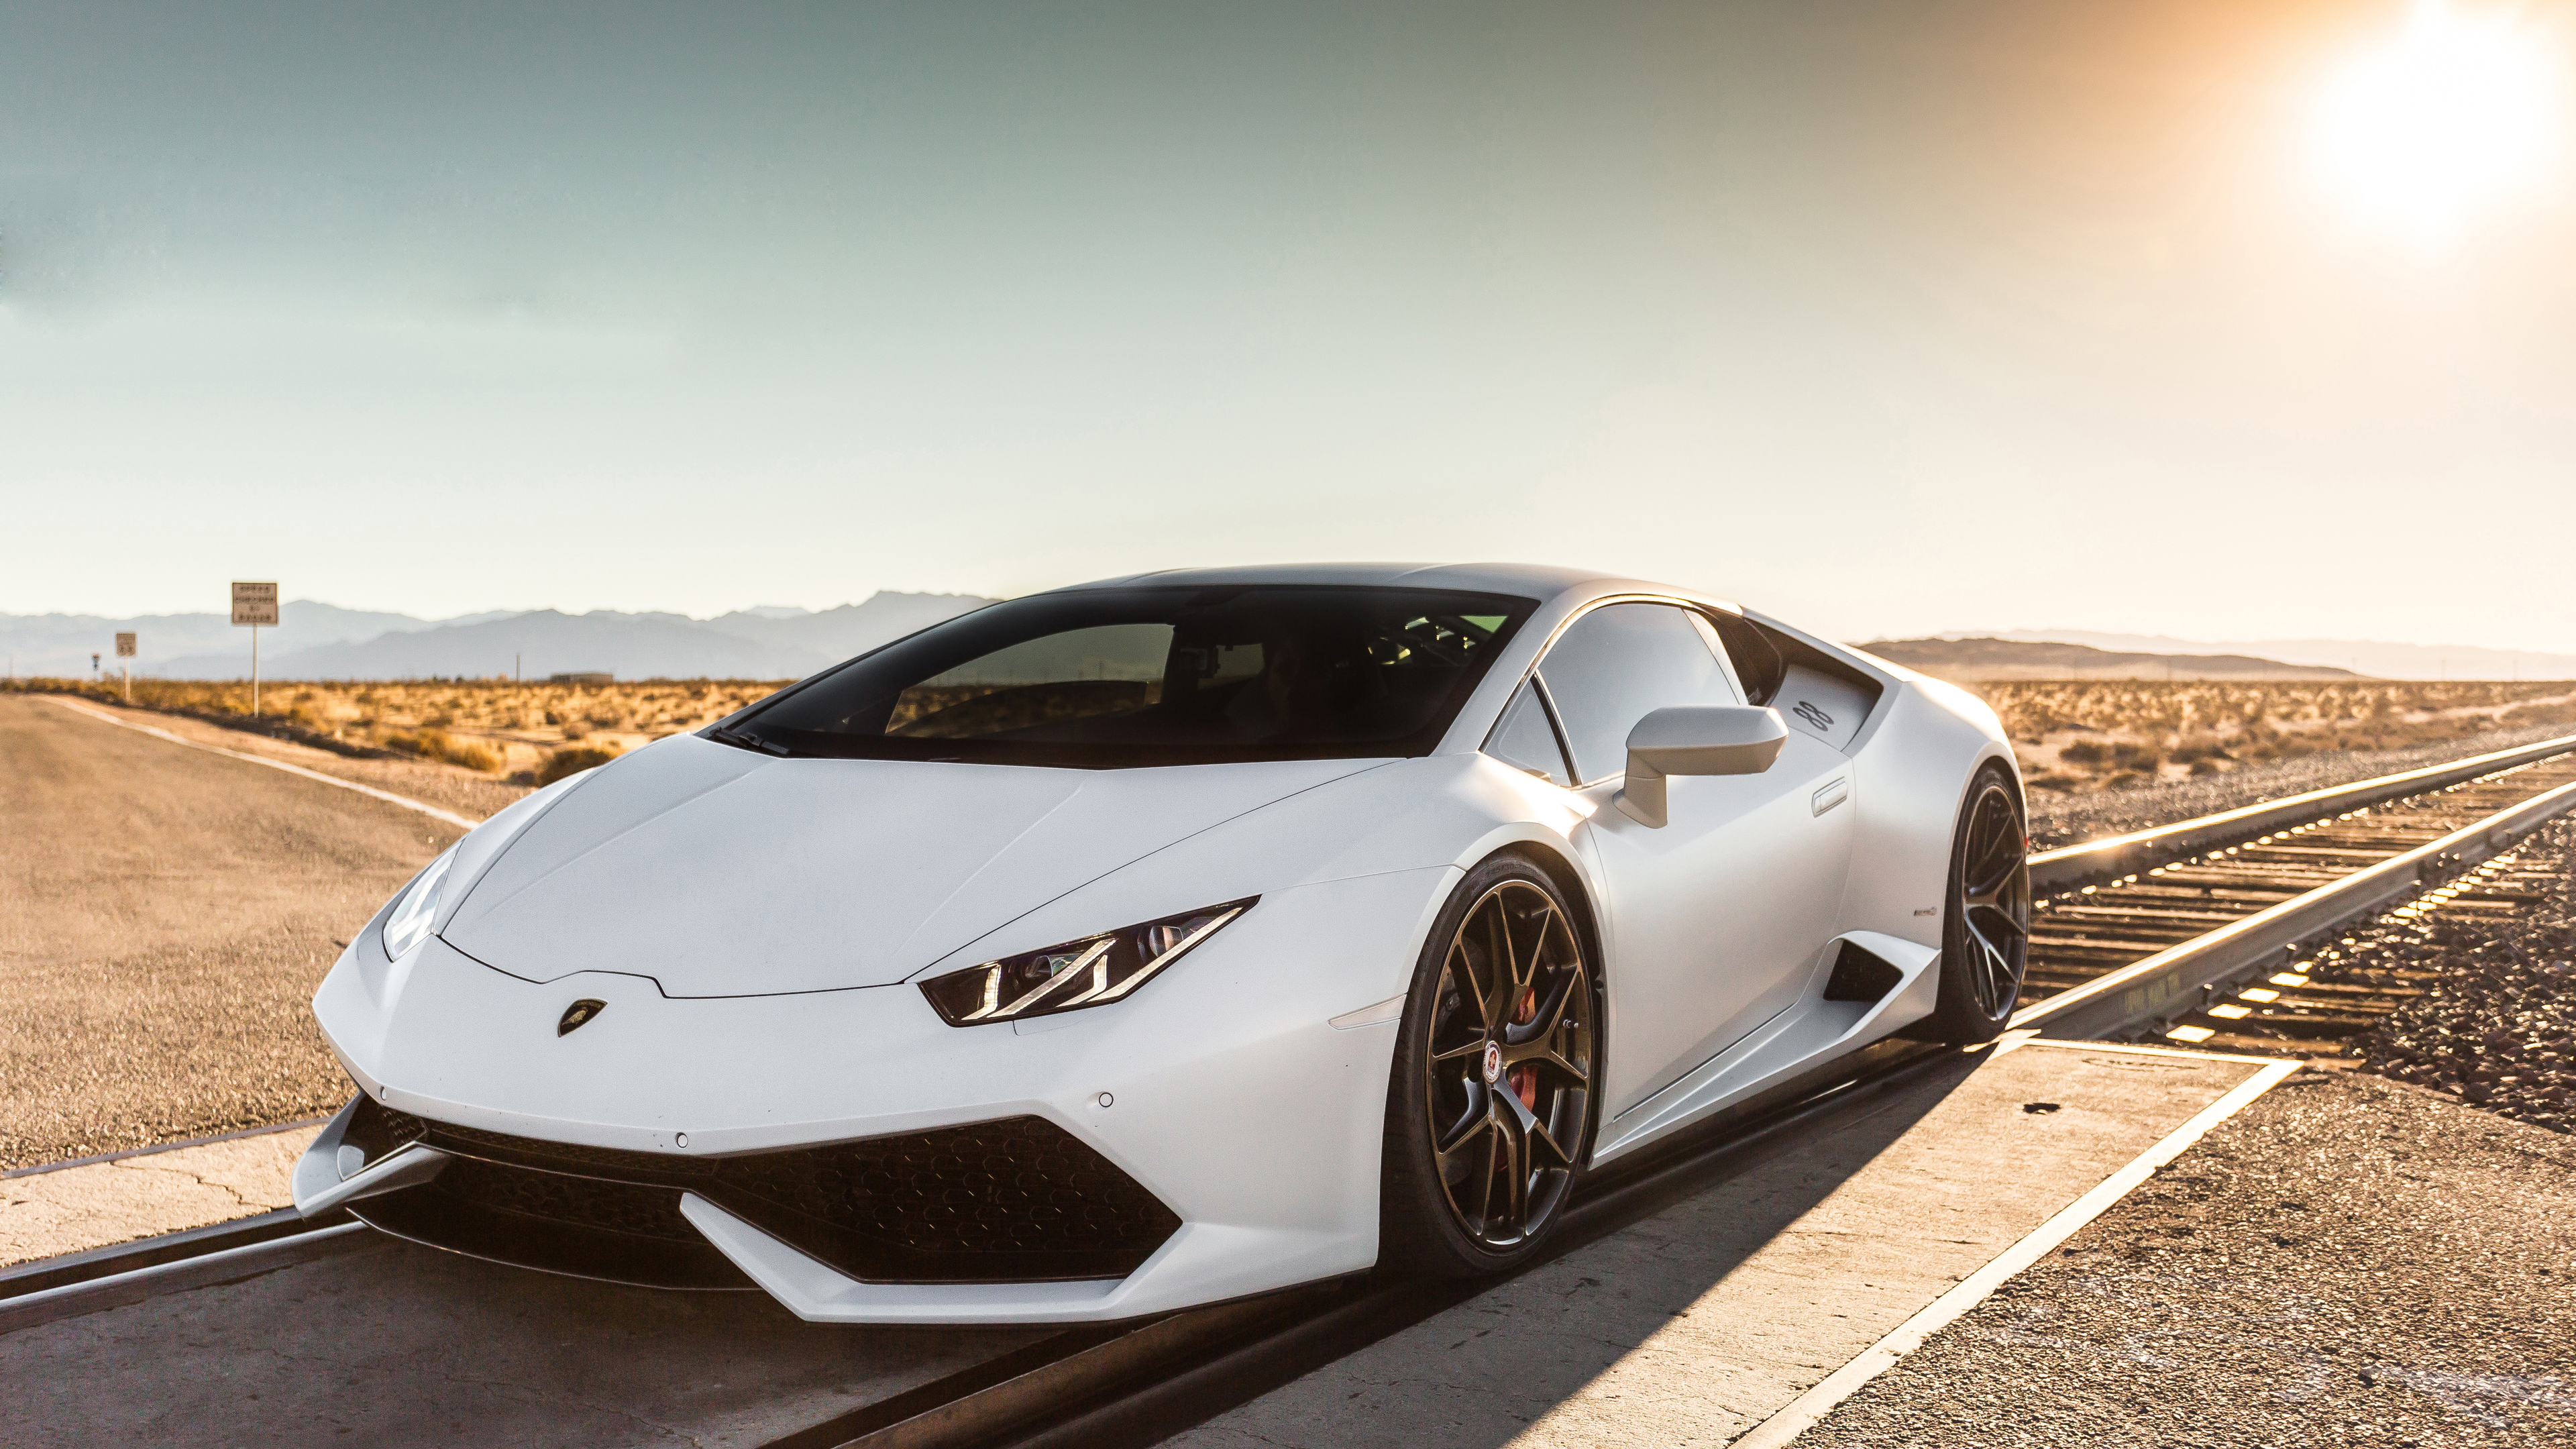 white lamborghini huracan 4k 2018 1546361650 - White Lamborghini Huracan 4k 2018 - lamborghini wallpapers, lamborghini huracan wallpapers, hd-wallpapers, cars wallpapers, 5k wallpapers, 4k-wallpapers